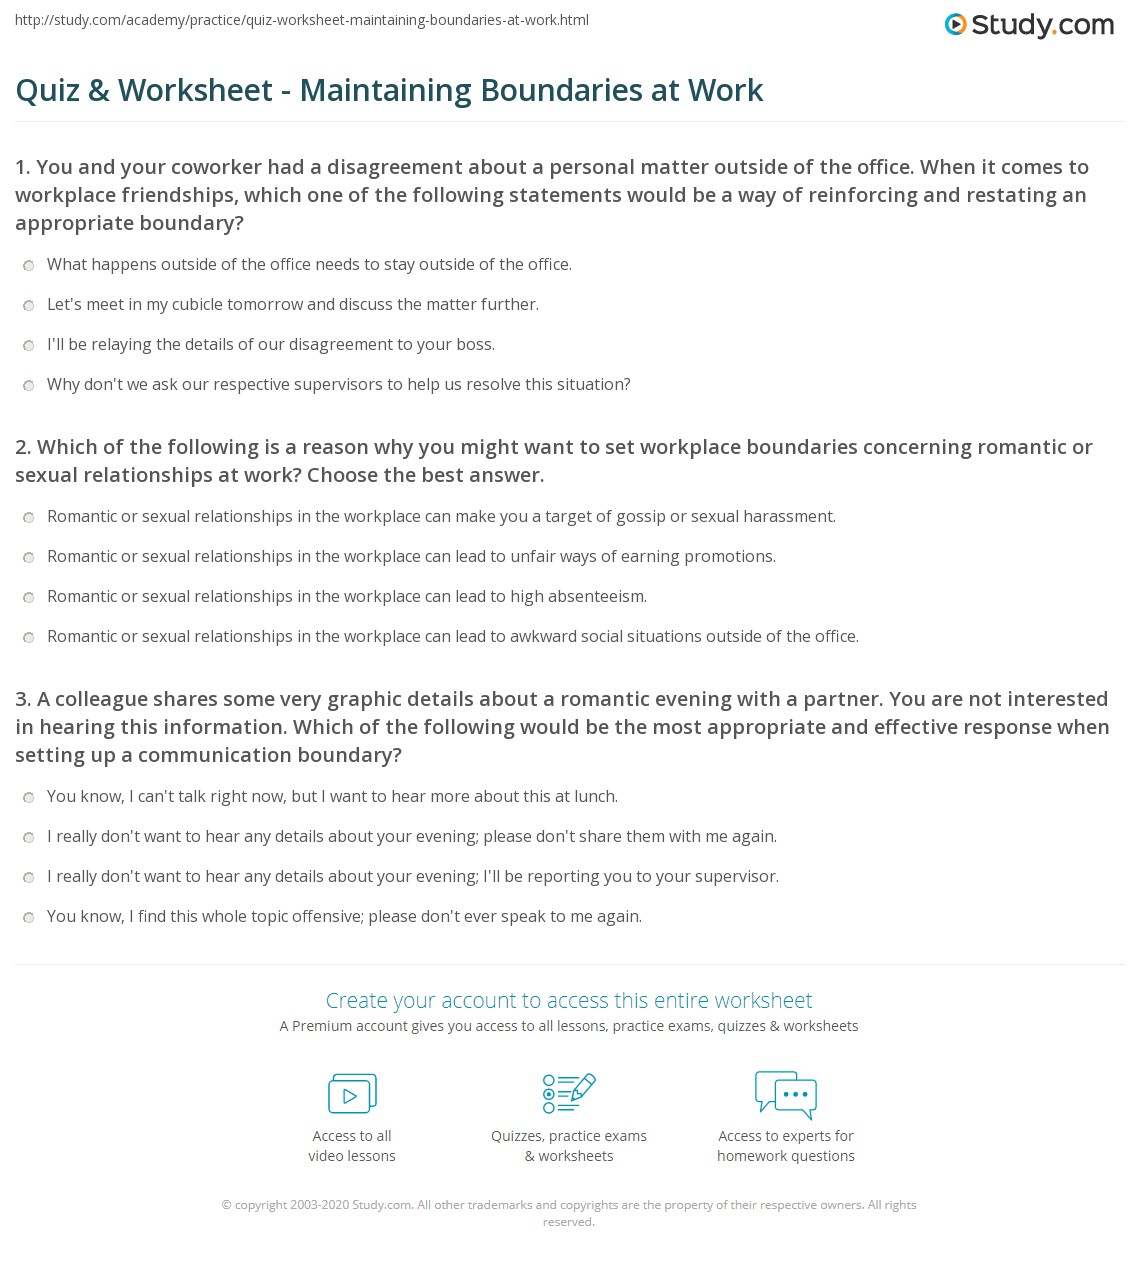 Quiz & Worksheet - Maintaining Boundaries at Work | Study.com